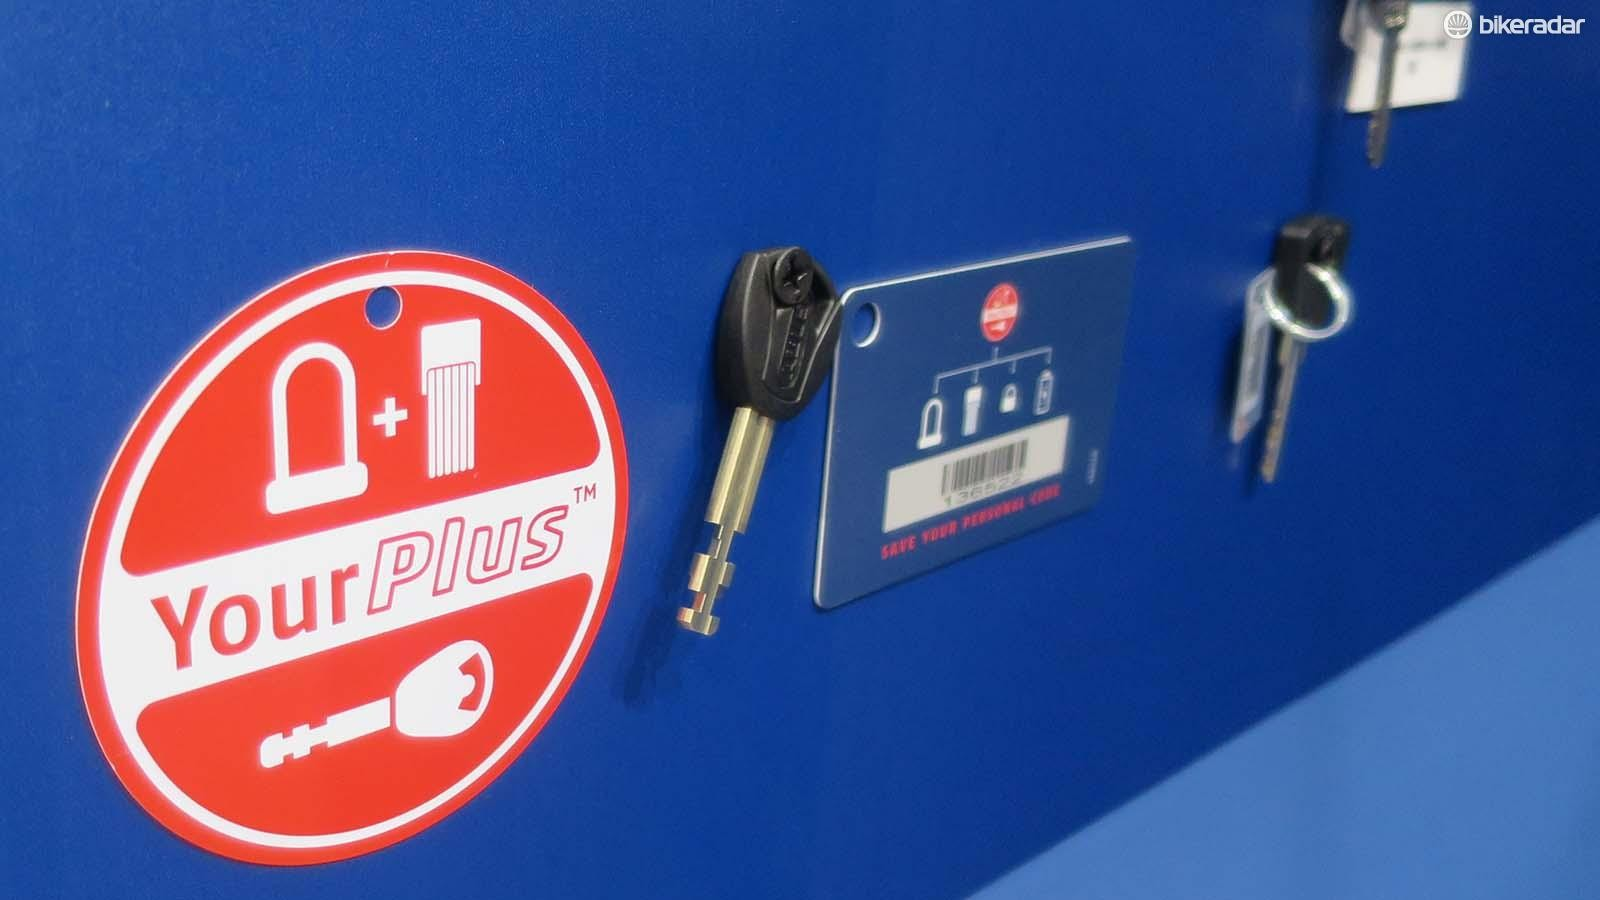 With the Your Plus system it means you can order locks (or your bike's battery lock) to share the same key